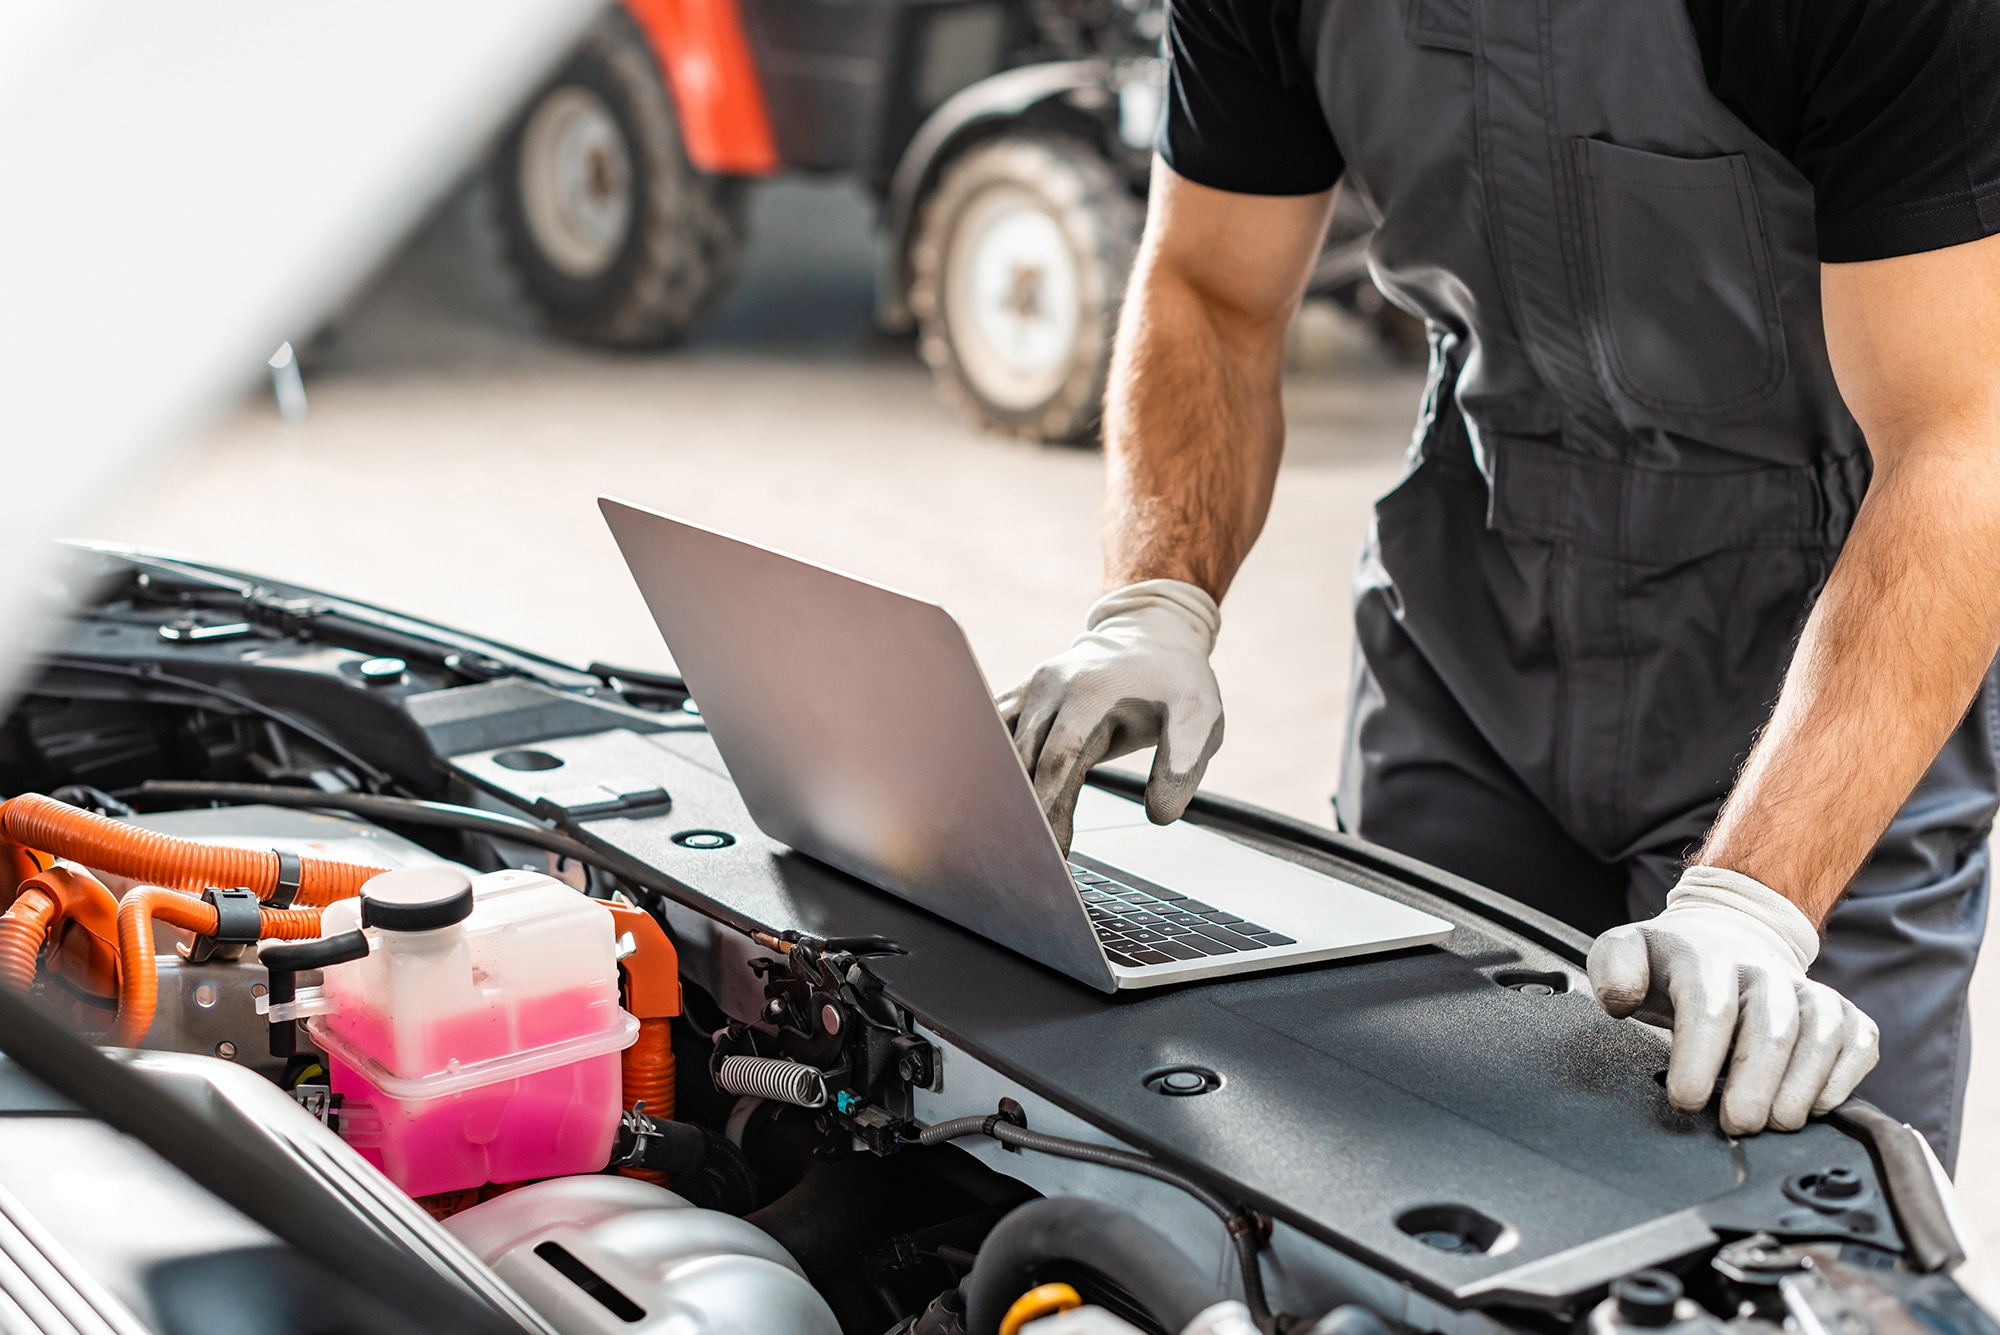 Mechanic working on a vehicle with laptop   Range Rover diagnostics Alloa, Stirling and Falkirk